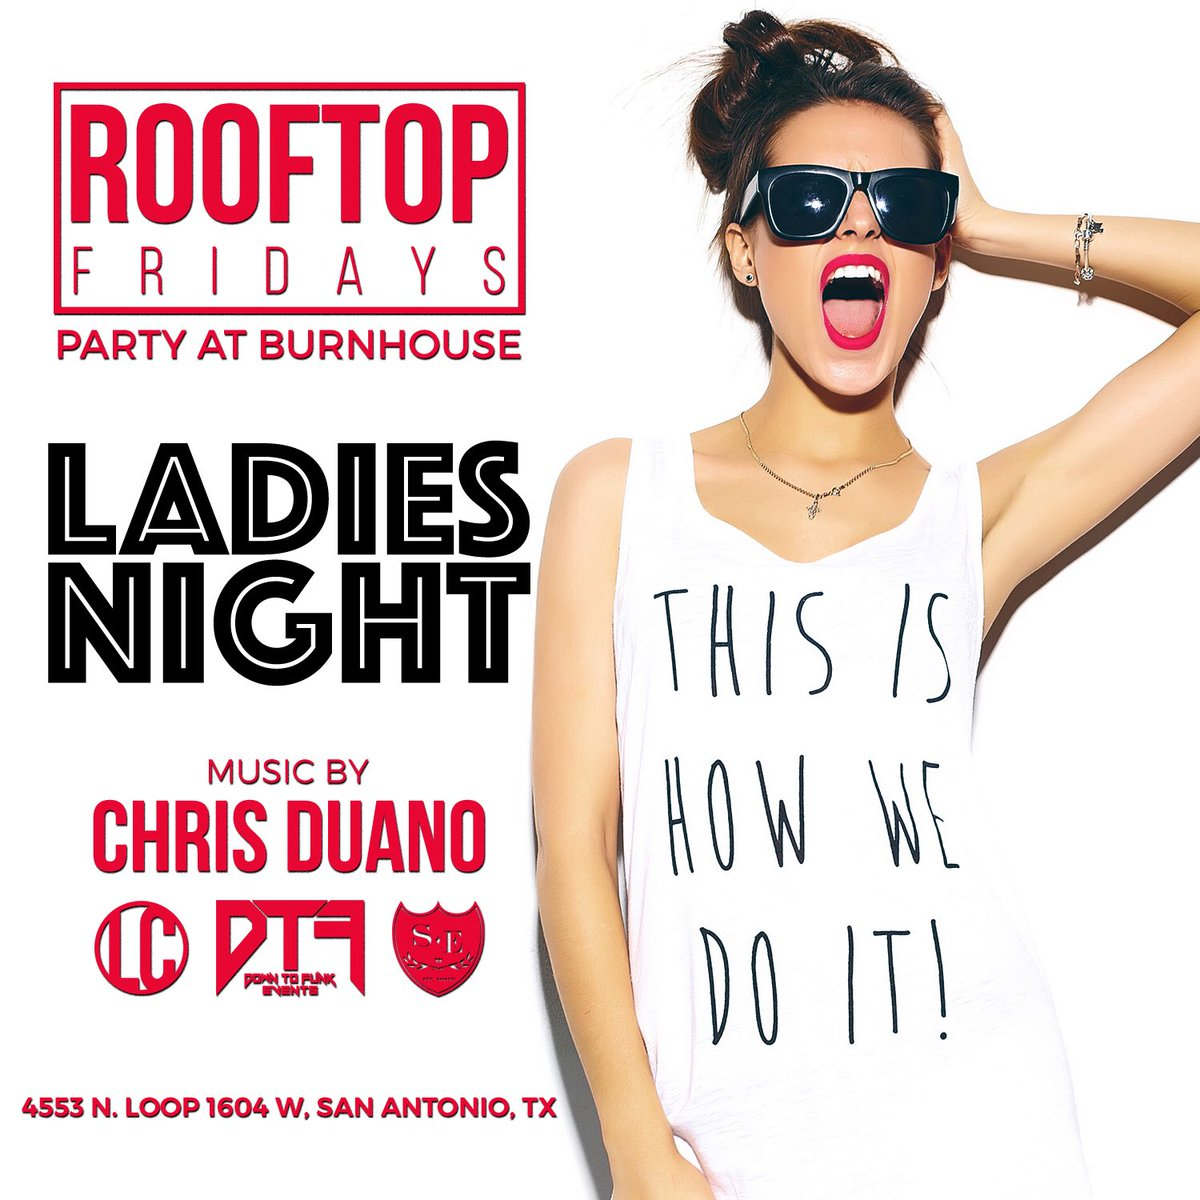 See you tonight @BurnHouseSA  party on the roof!! Text 956-272-9080 for VIP  #SocialElites #SA #BurnHouse<br>http://pic.twitter.com/h5lqoeoqNc